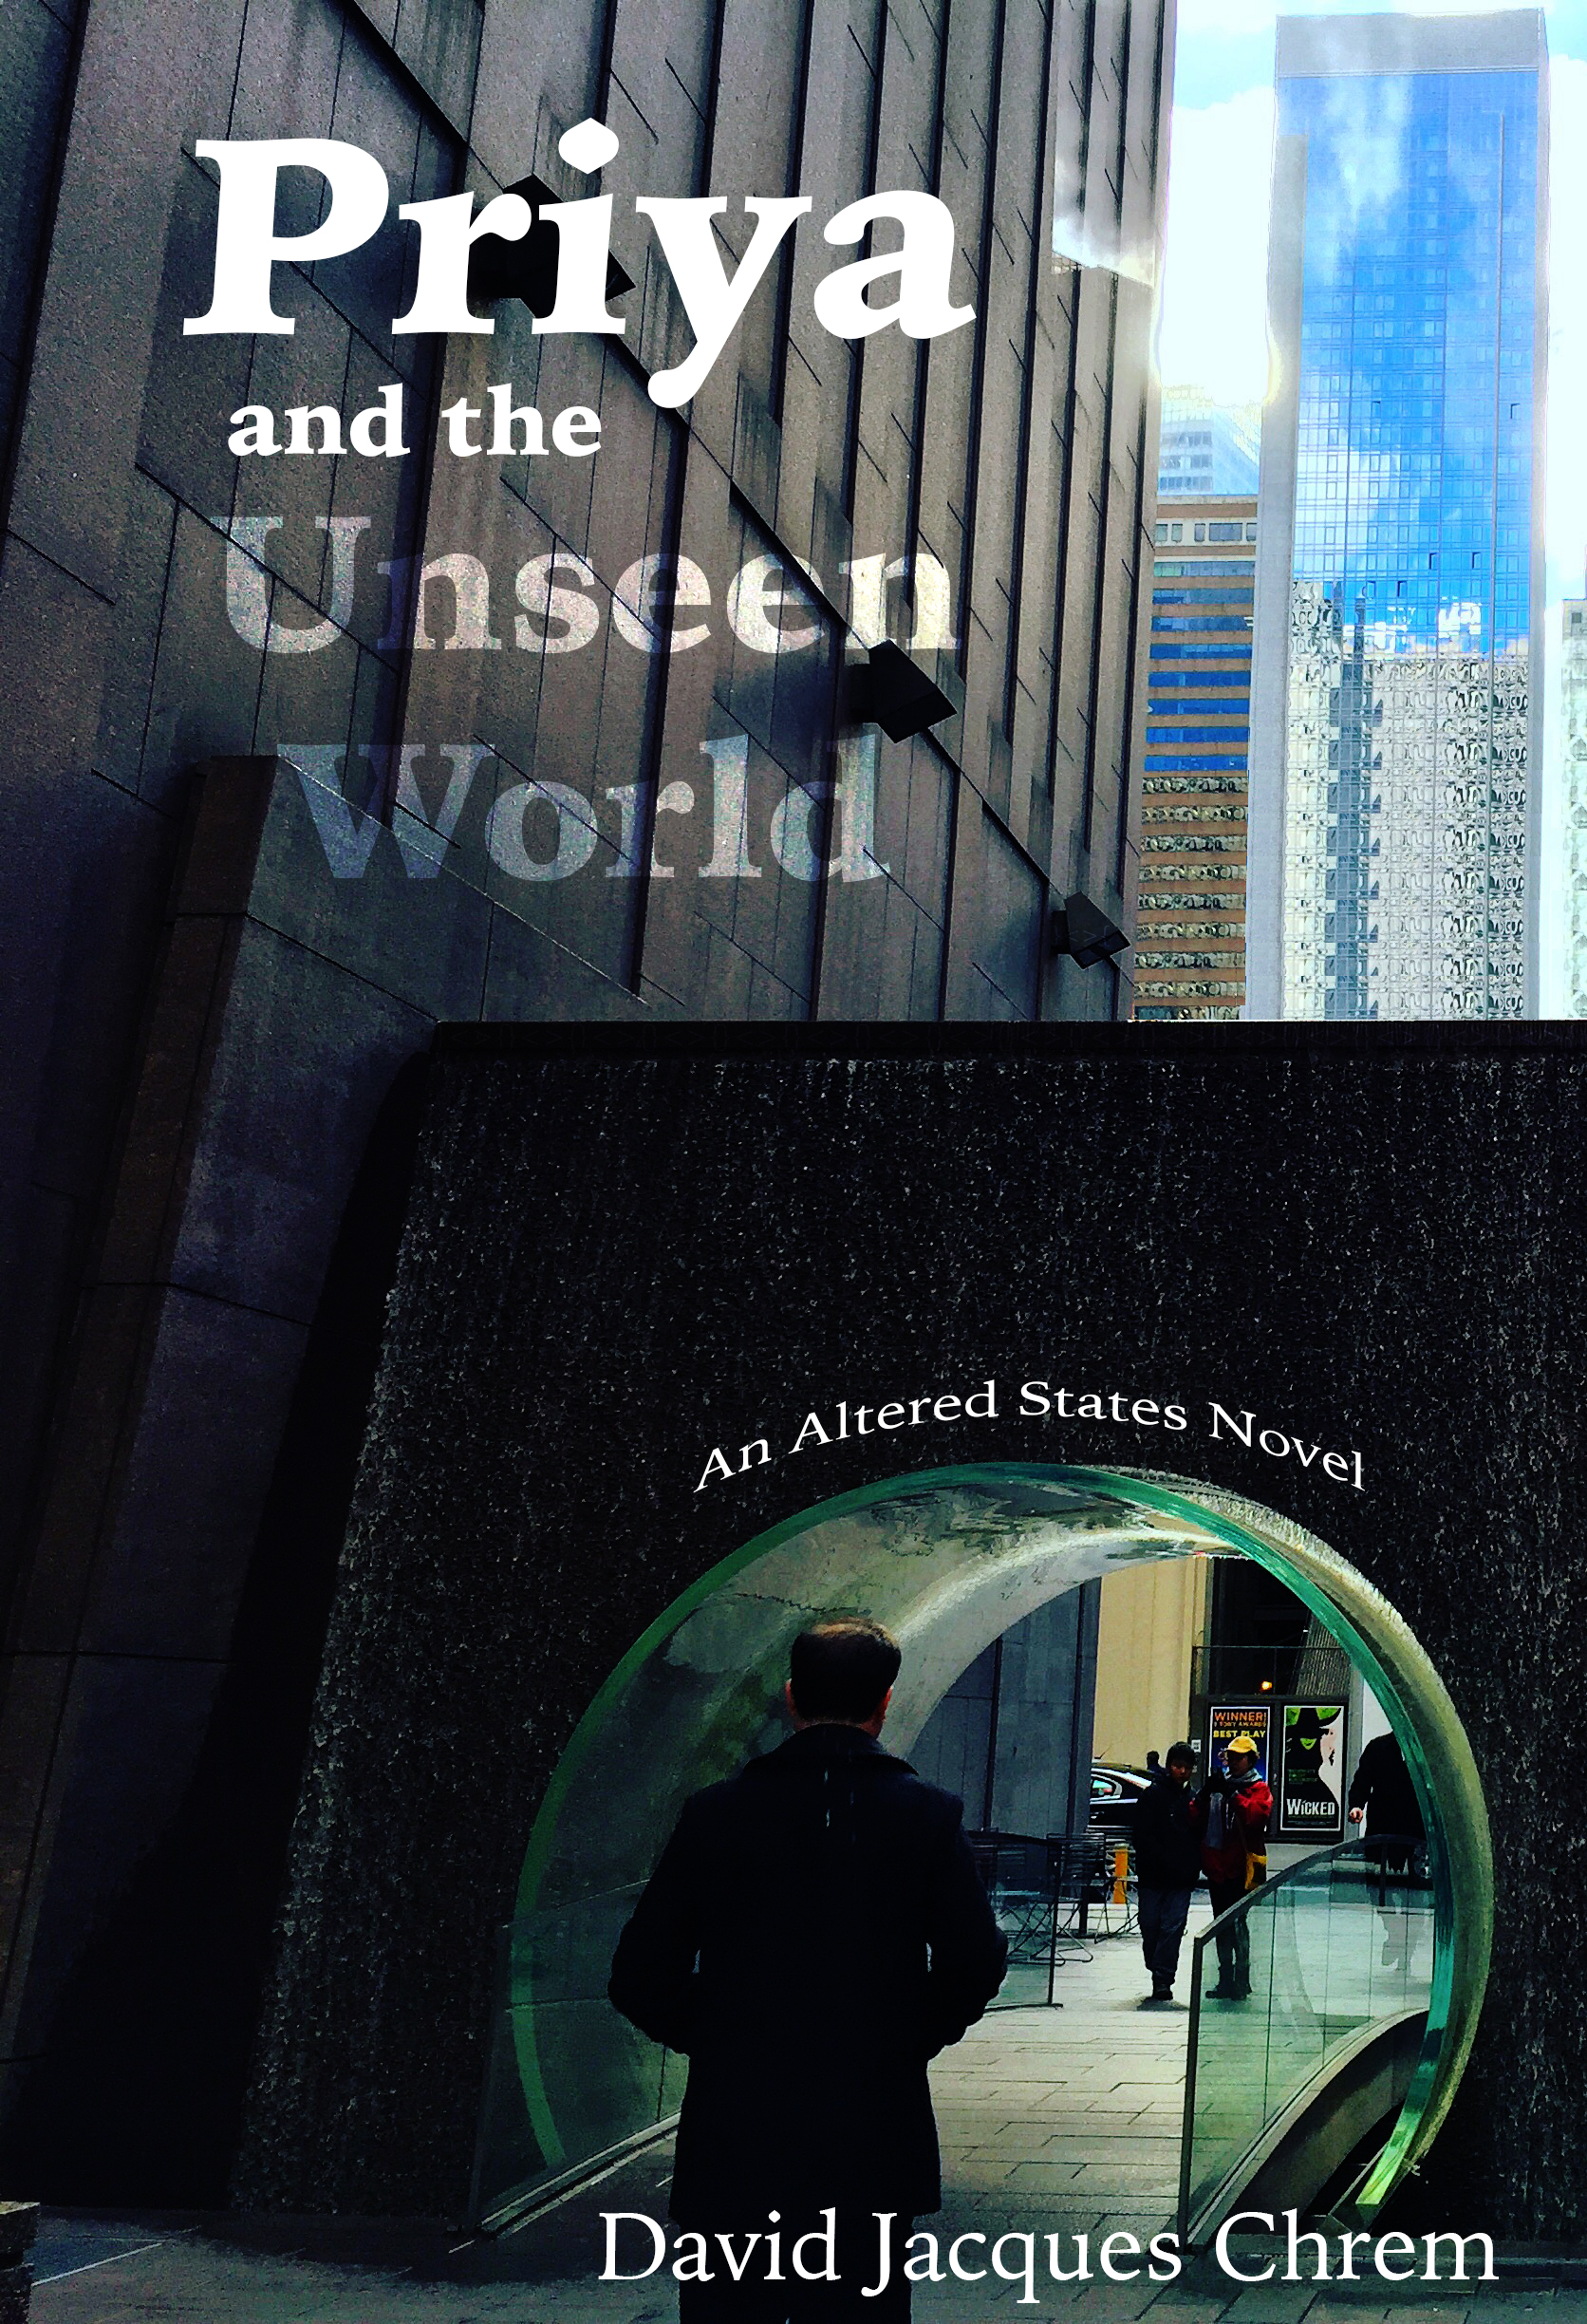 Priya and the Unseen World cover art